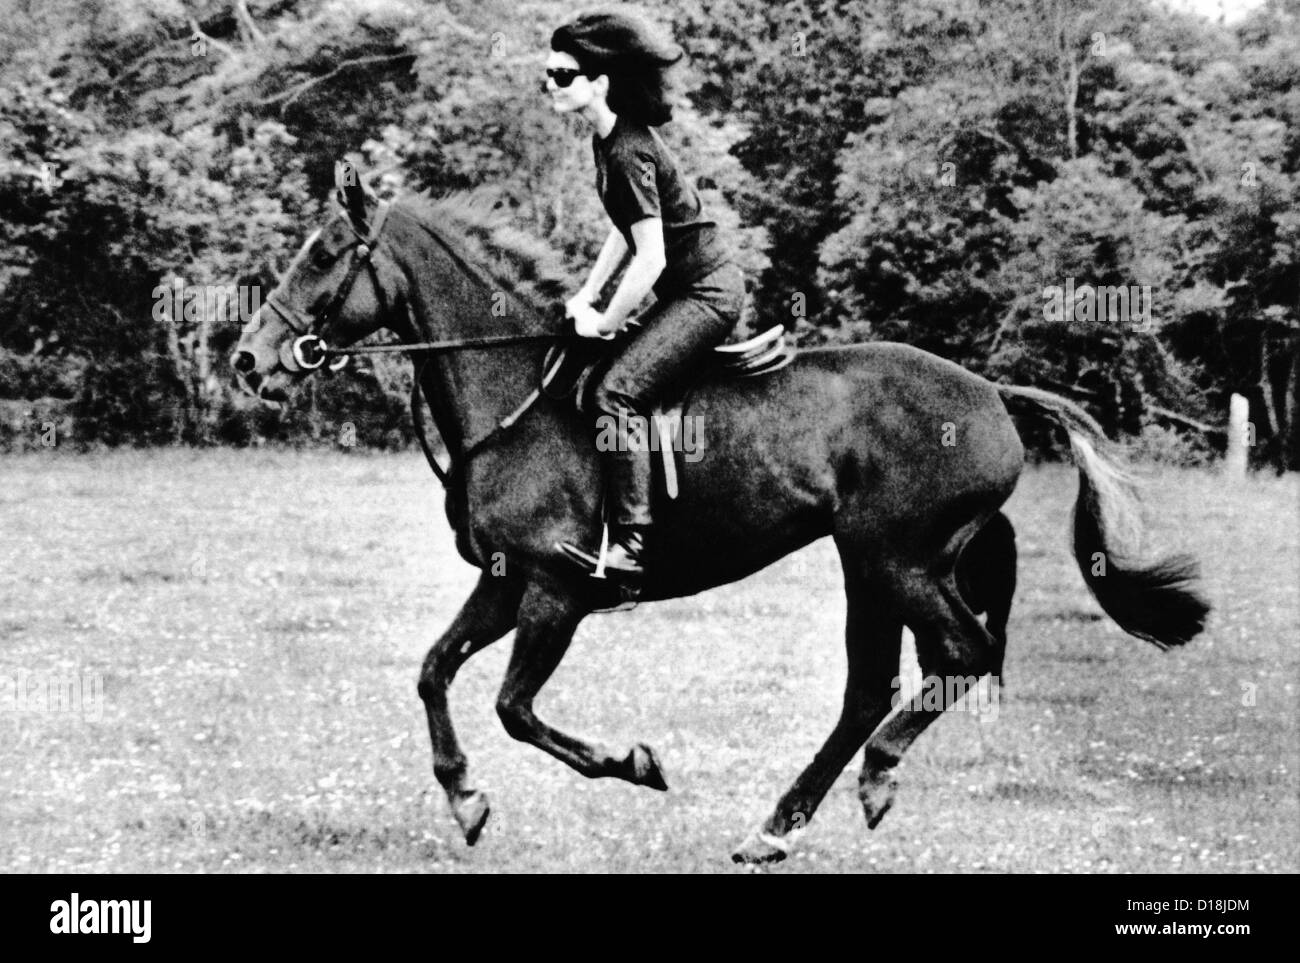 Jacqueline Kennedy, riding a horse in Waterford, Ireland where she was on vacation with her children. June 16, 1967. - Stock Image